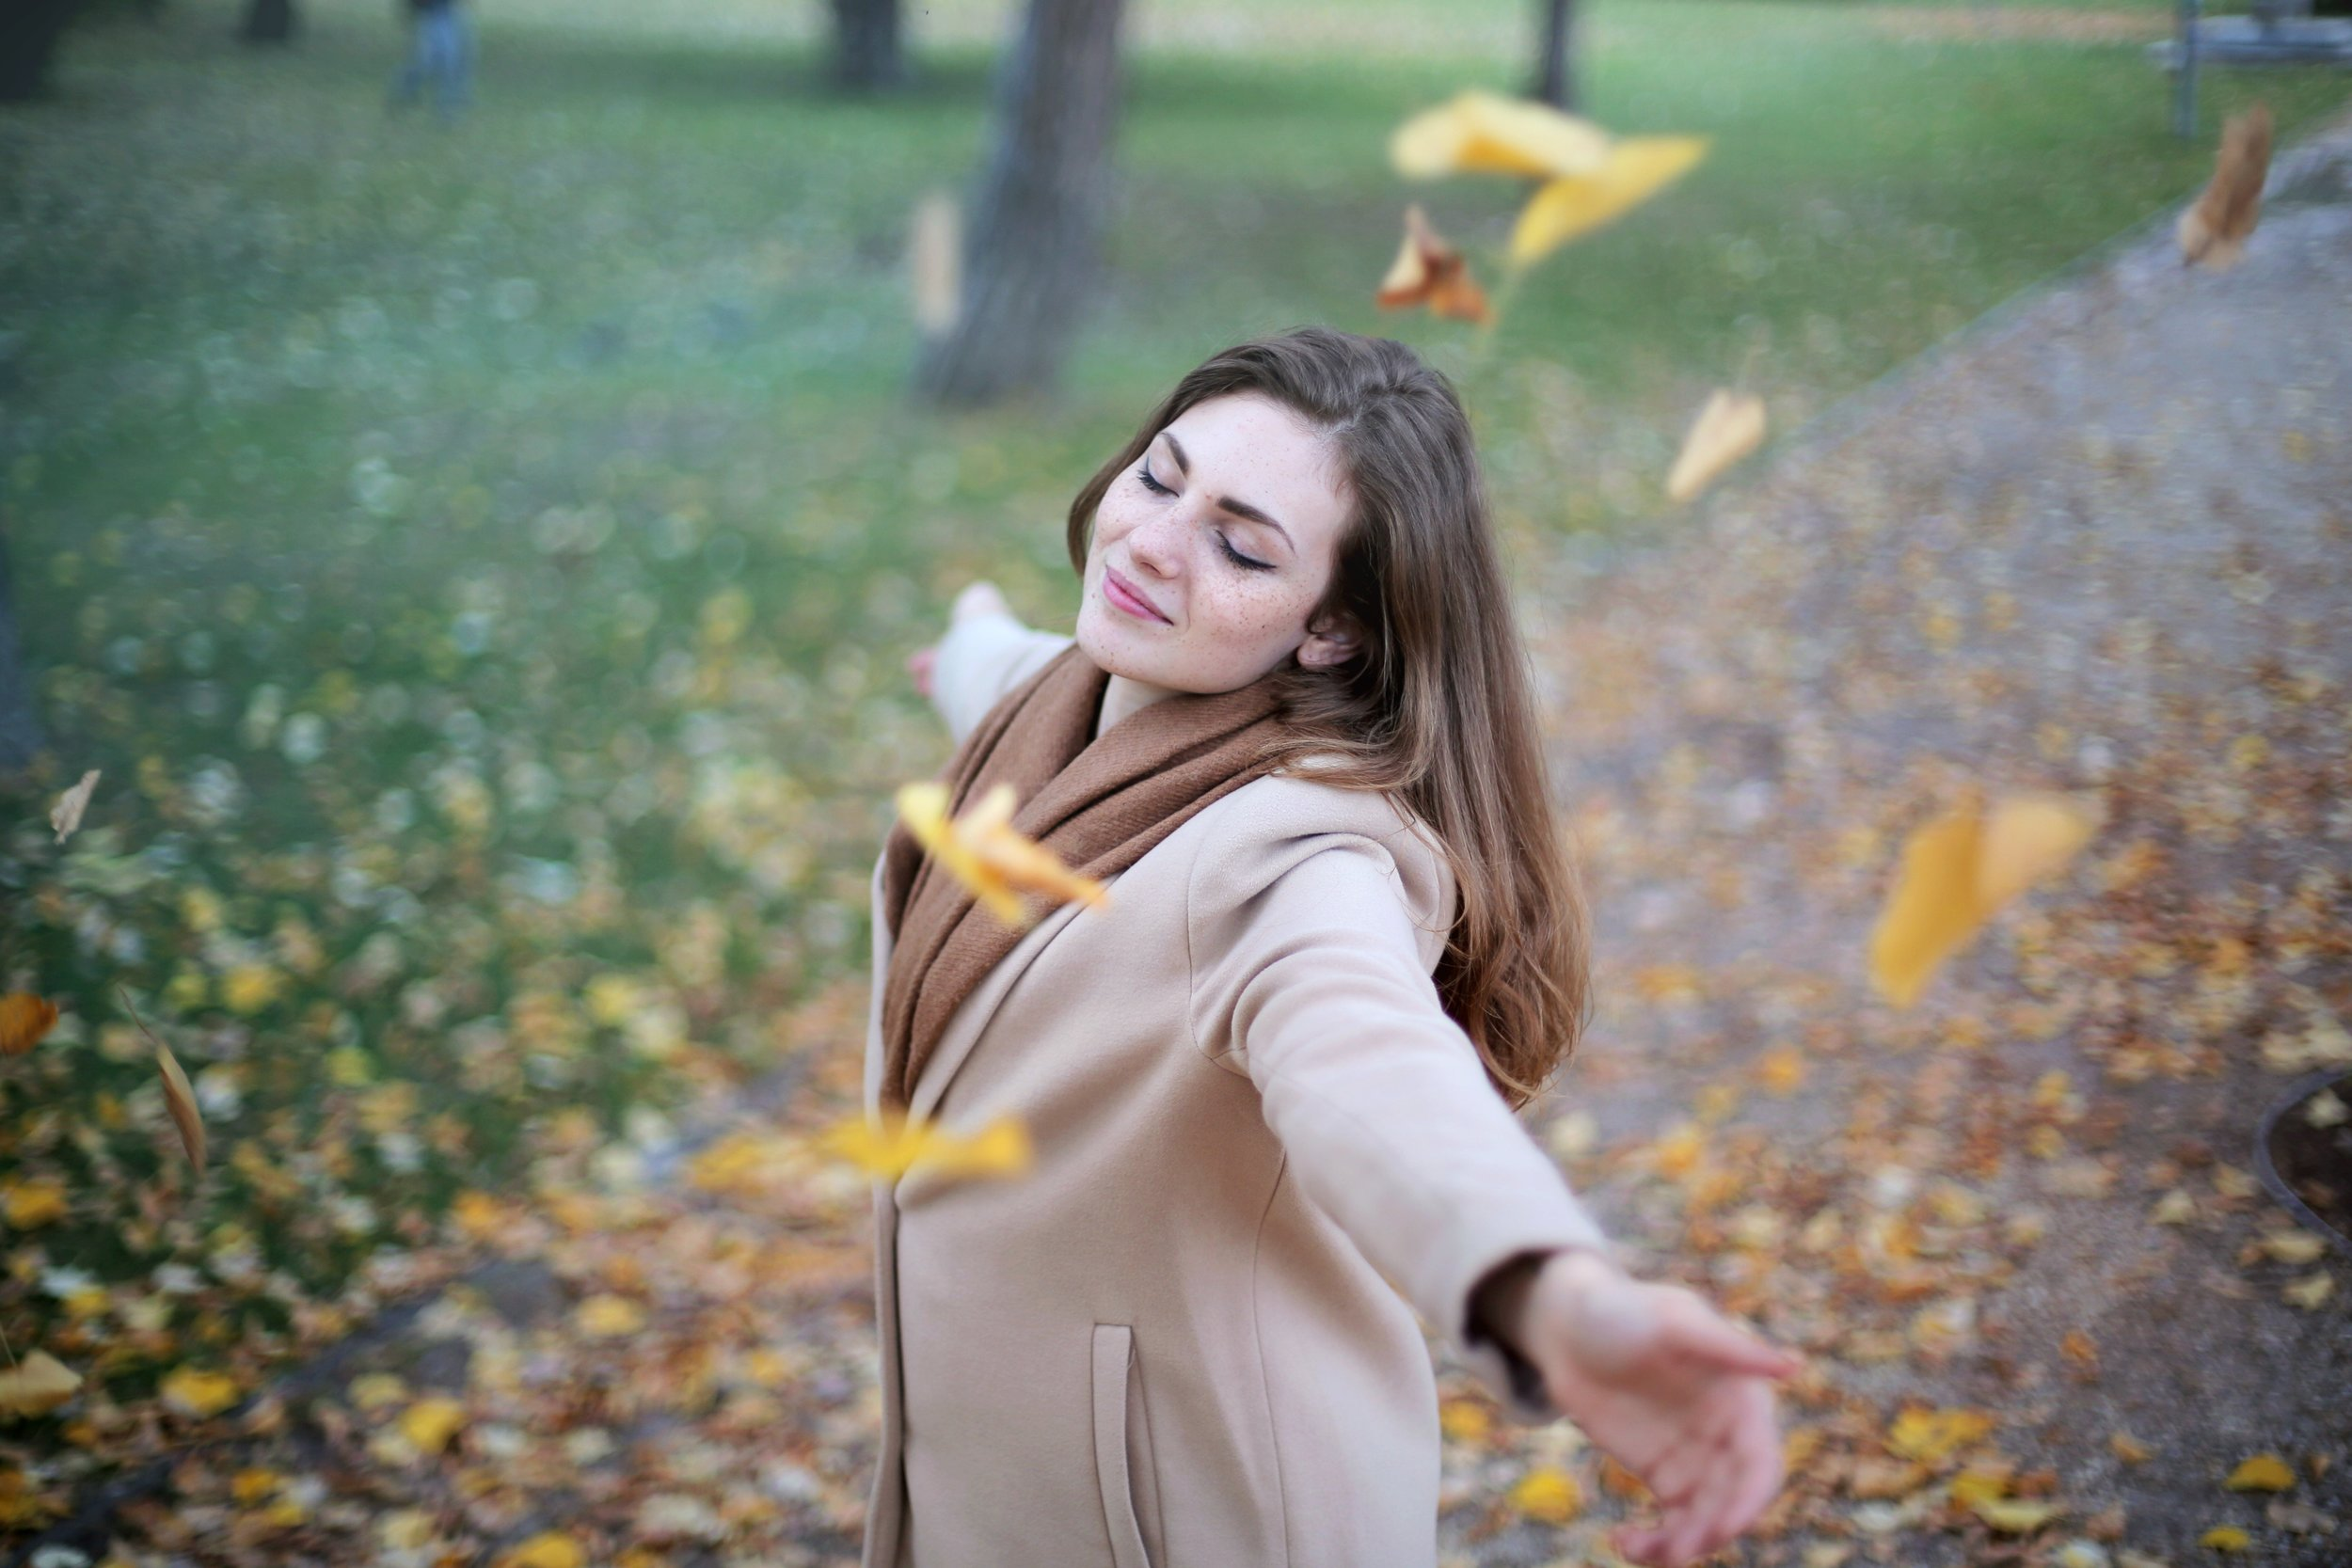 being present to enjoy your life more